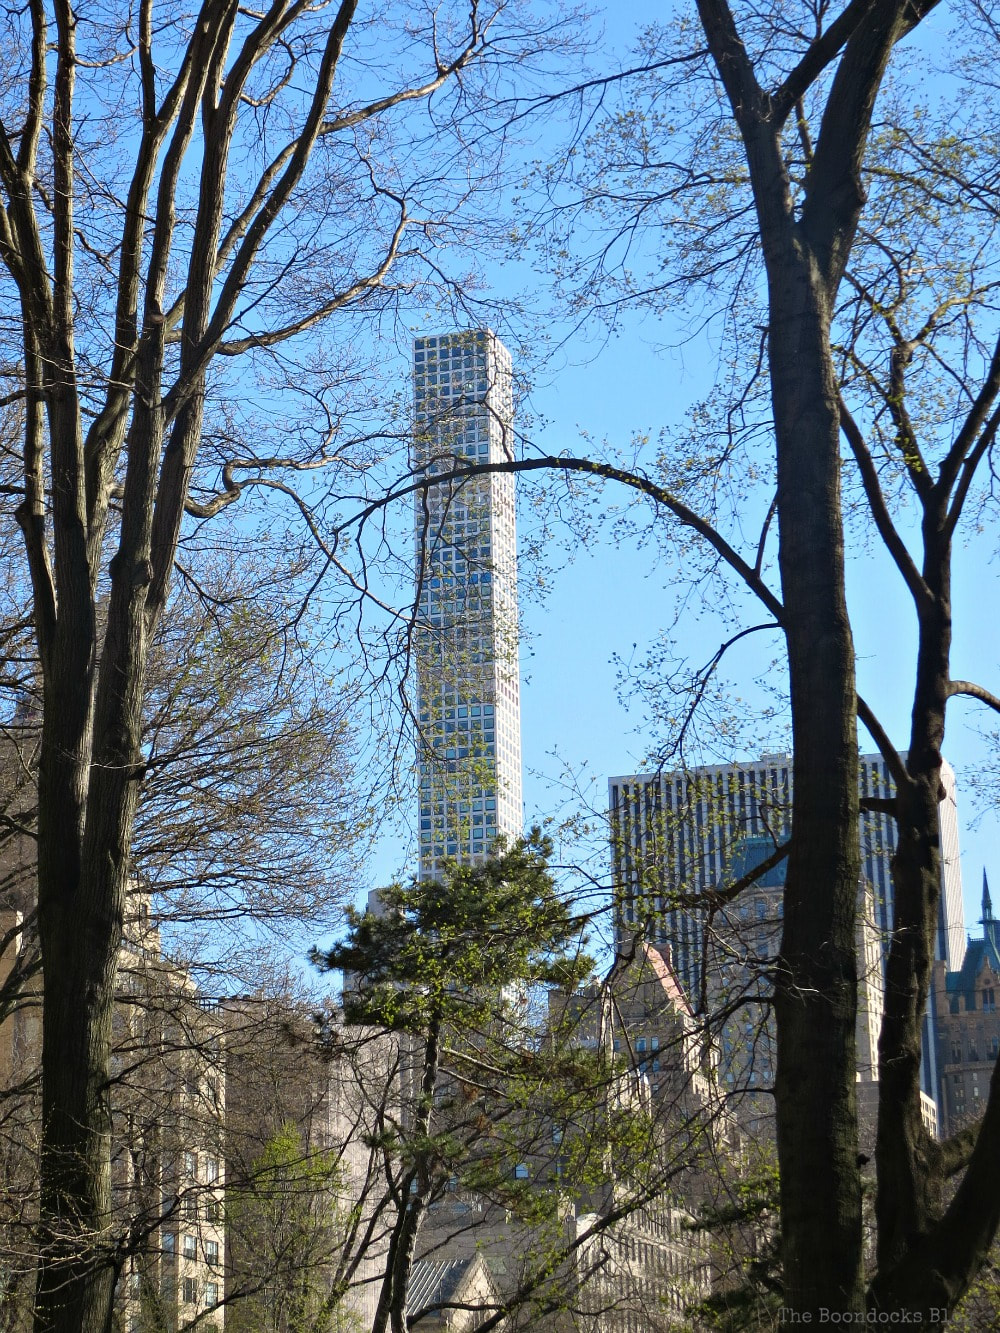 432 Park Avenue viewed from Central Park, Looking Up at Luxurious Buildings in Manhattan www.theboondocksblog.com